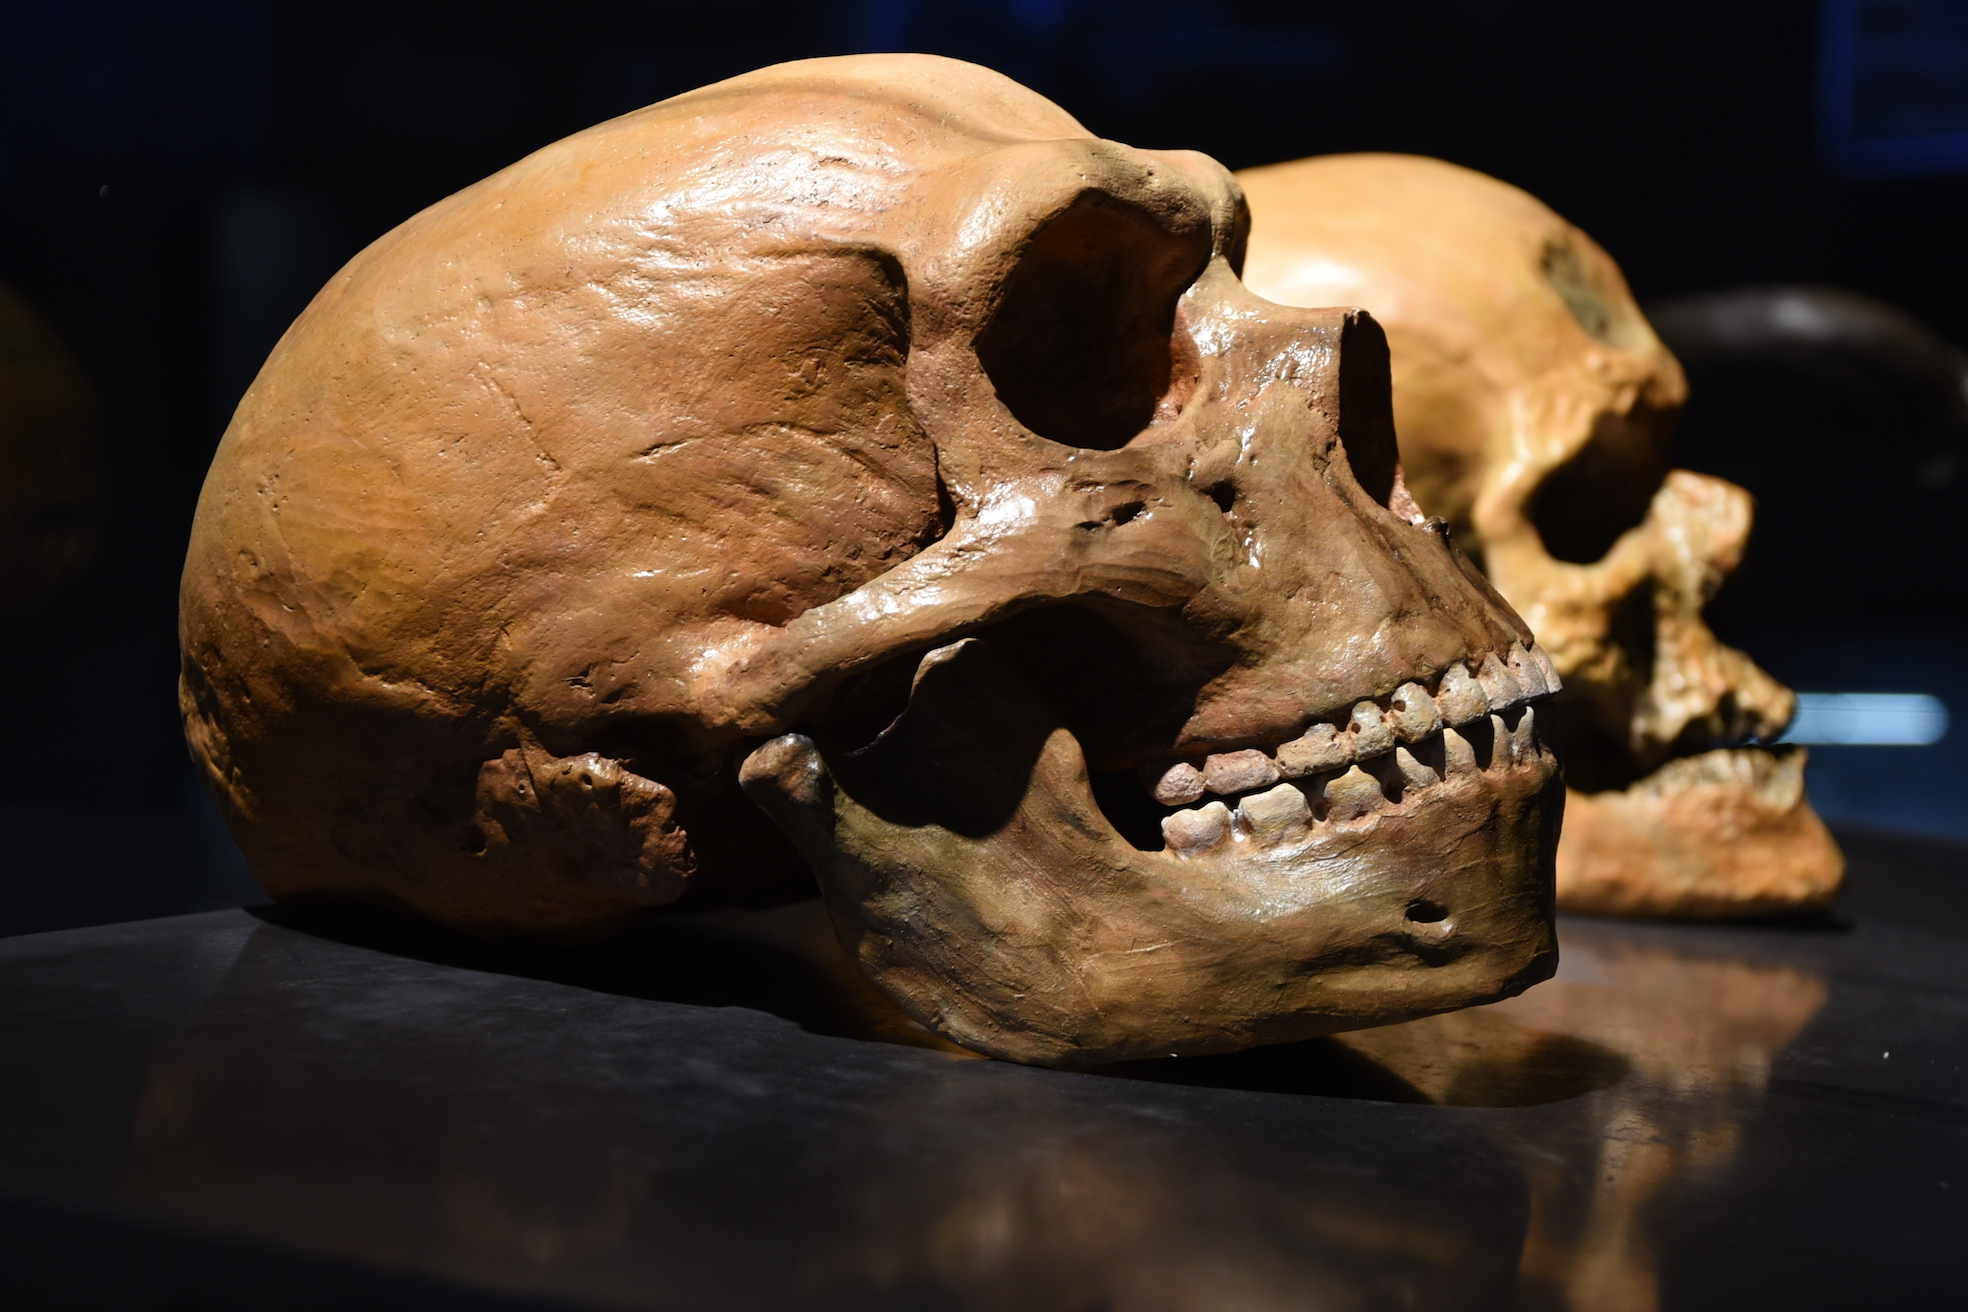 Recent research has suggested that Neanderthals may have been much more caring and compassionate than previously thought.